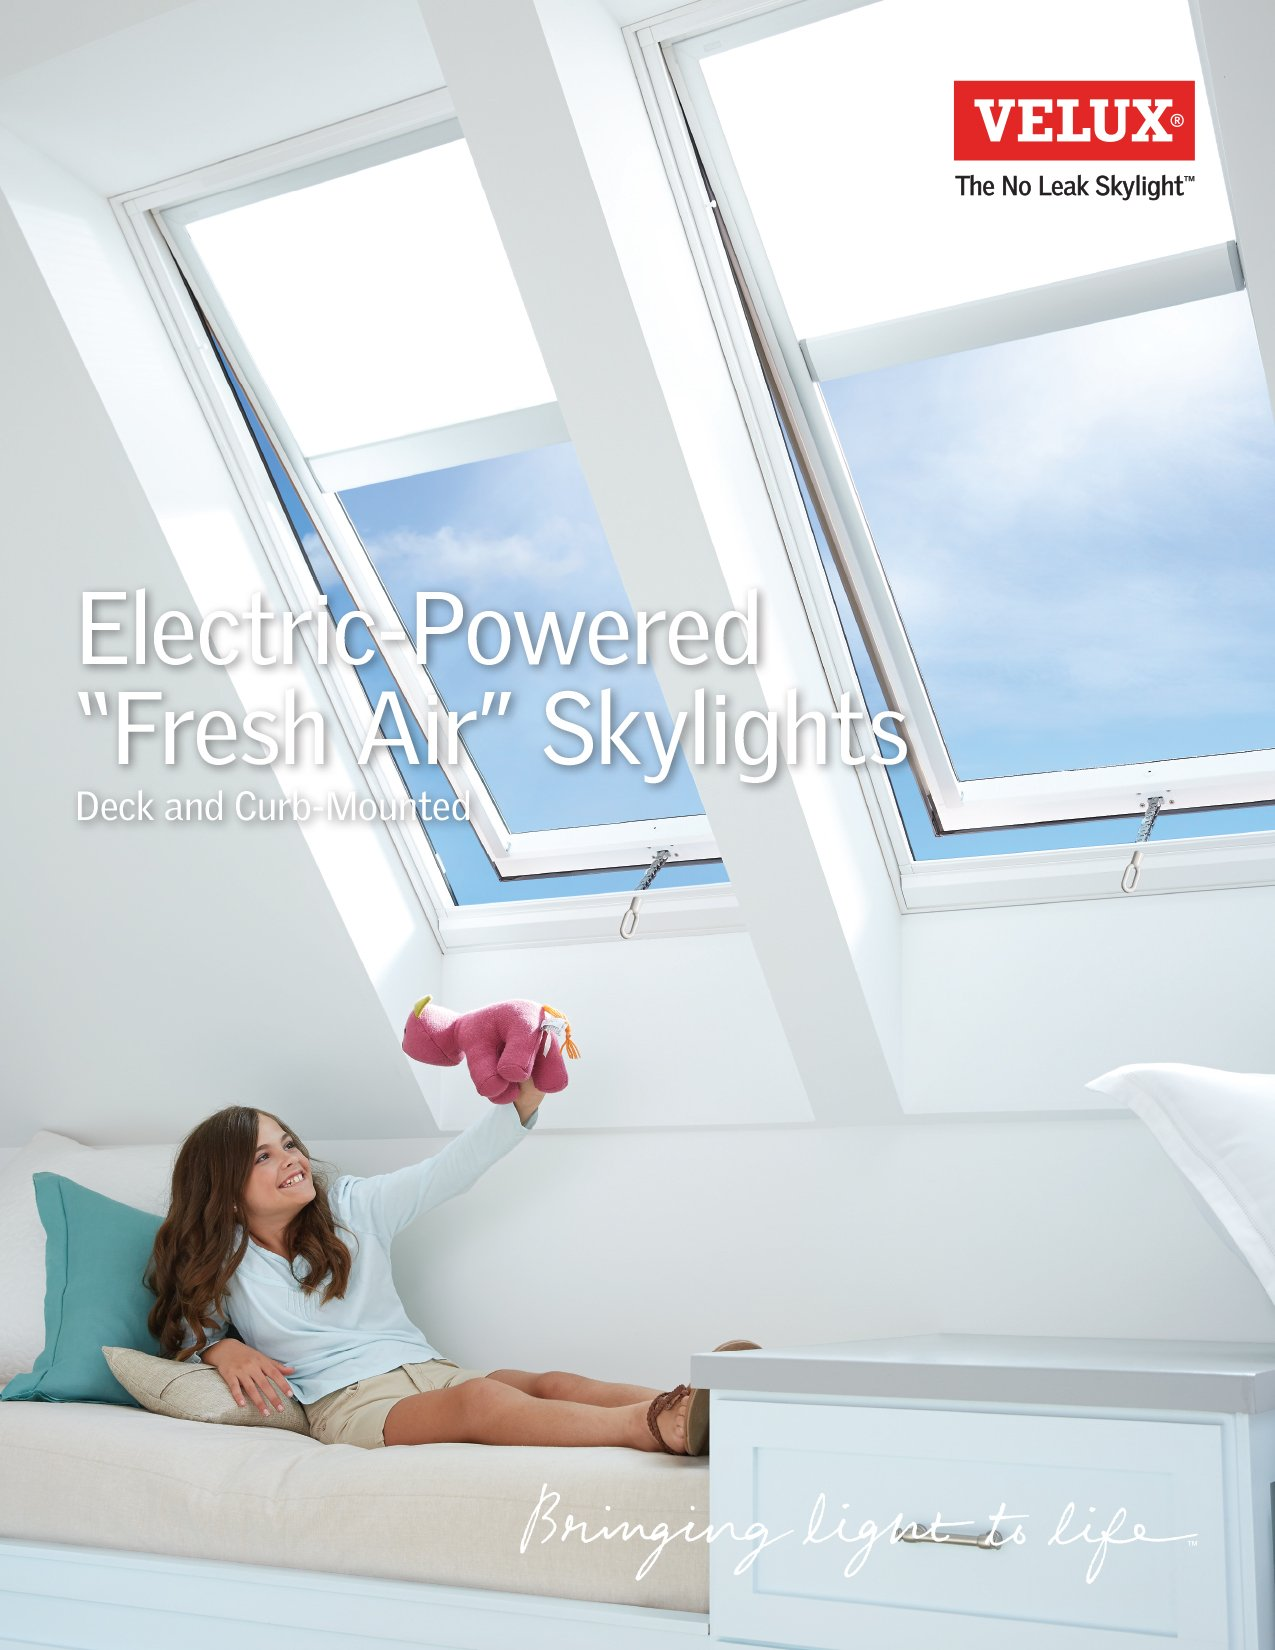 electricskylight-productguide